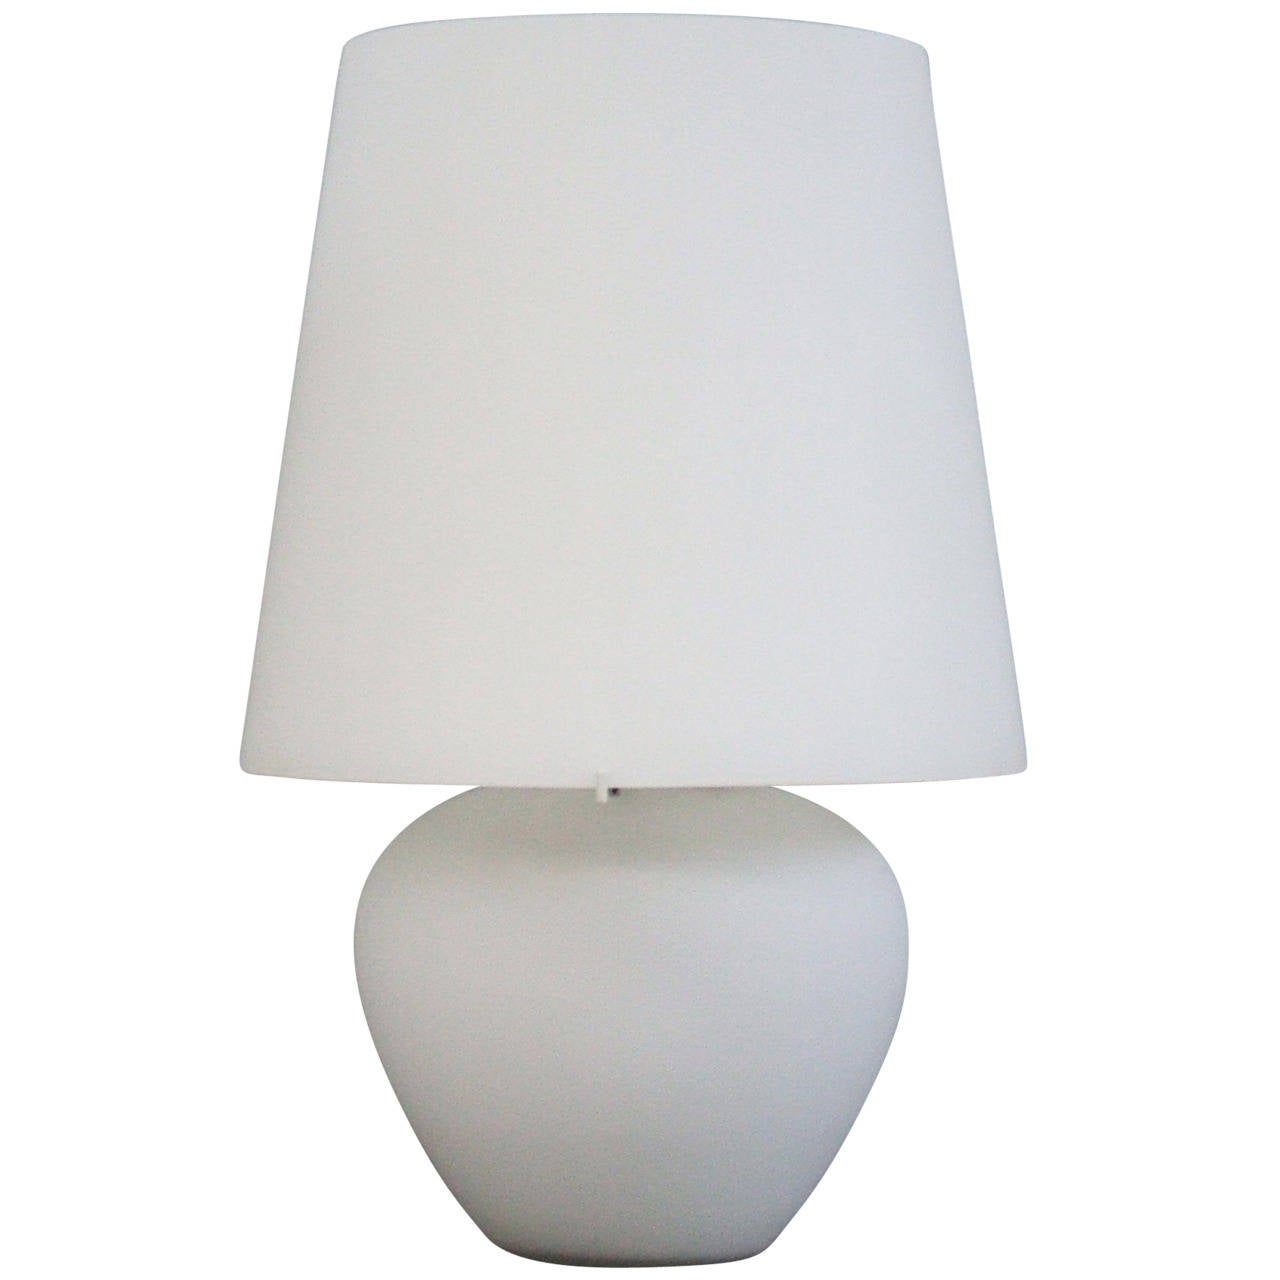 Fontana Arte Table Lamp